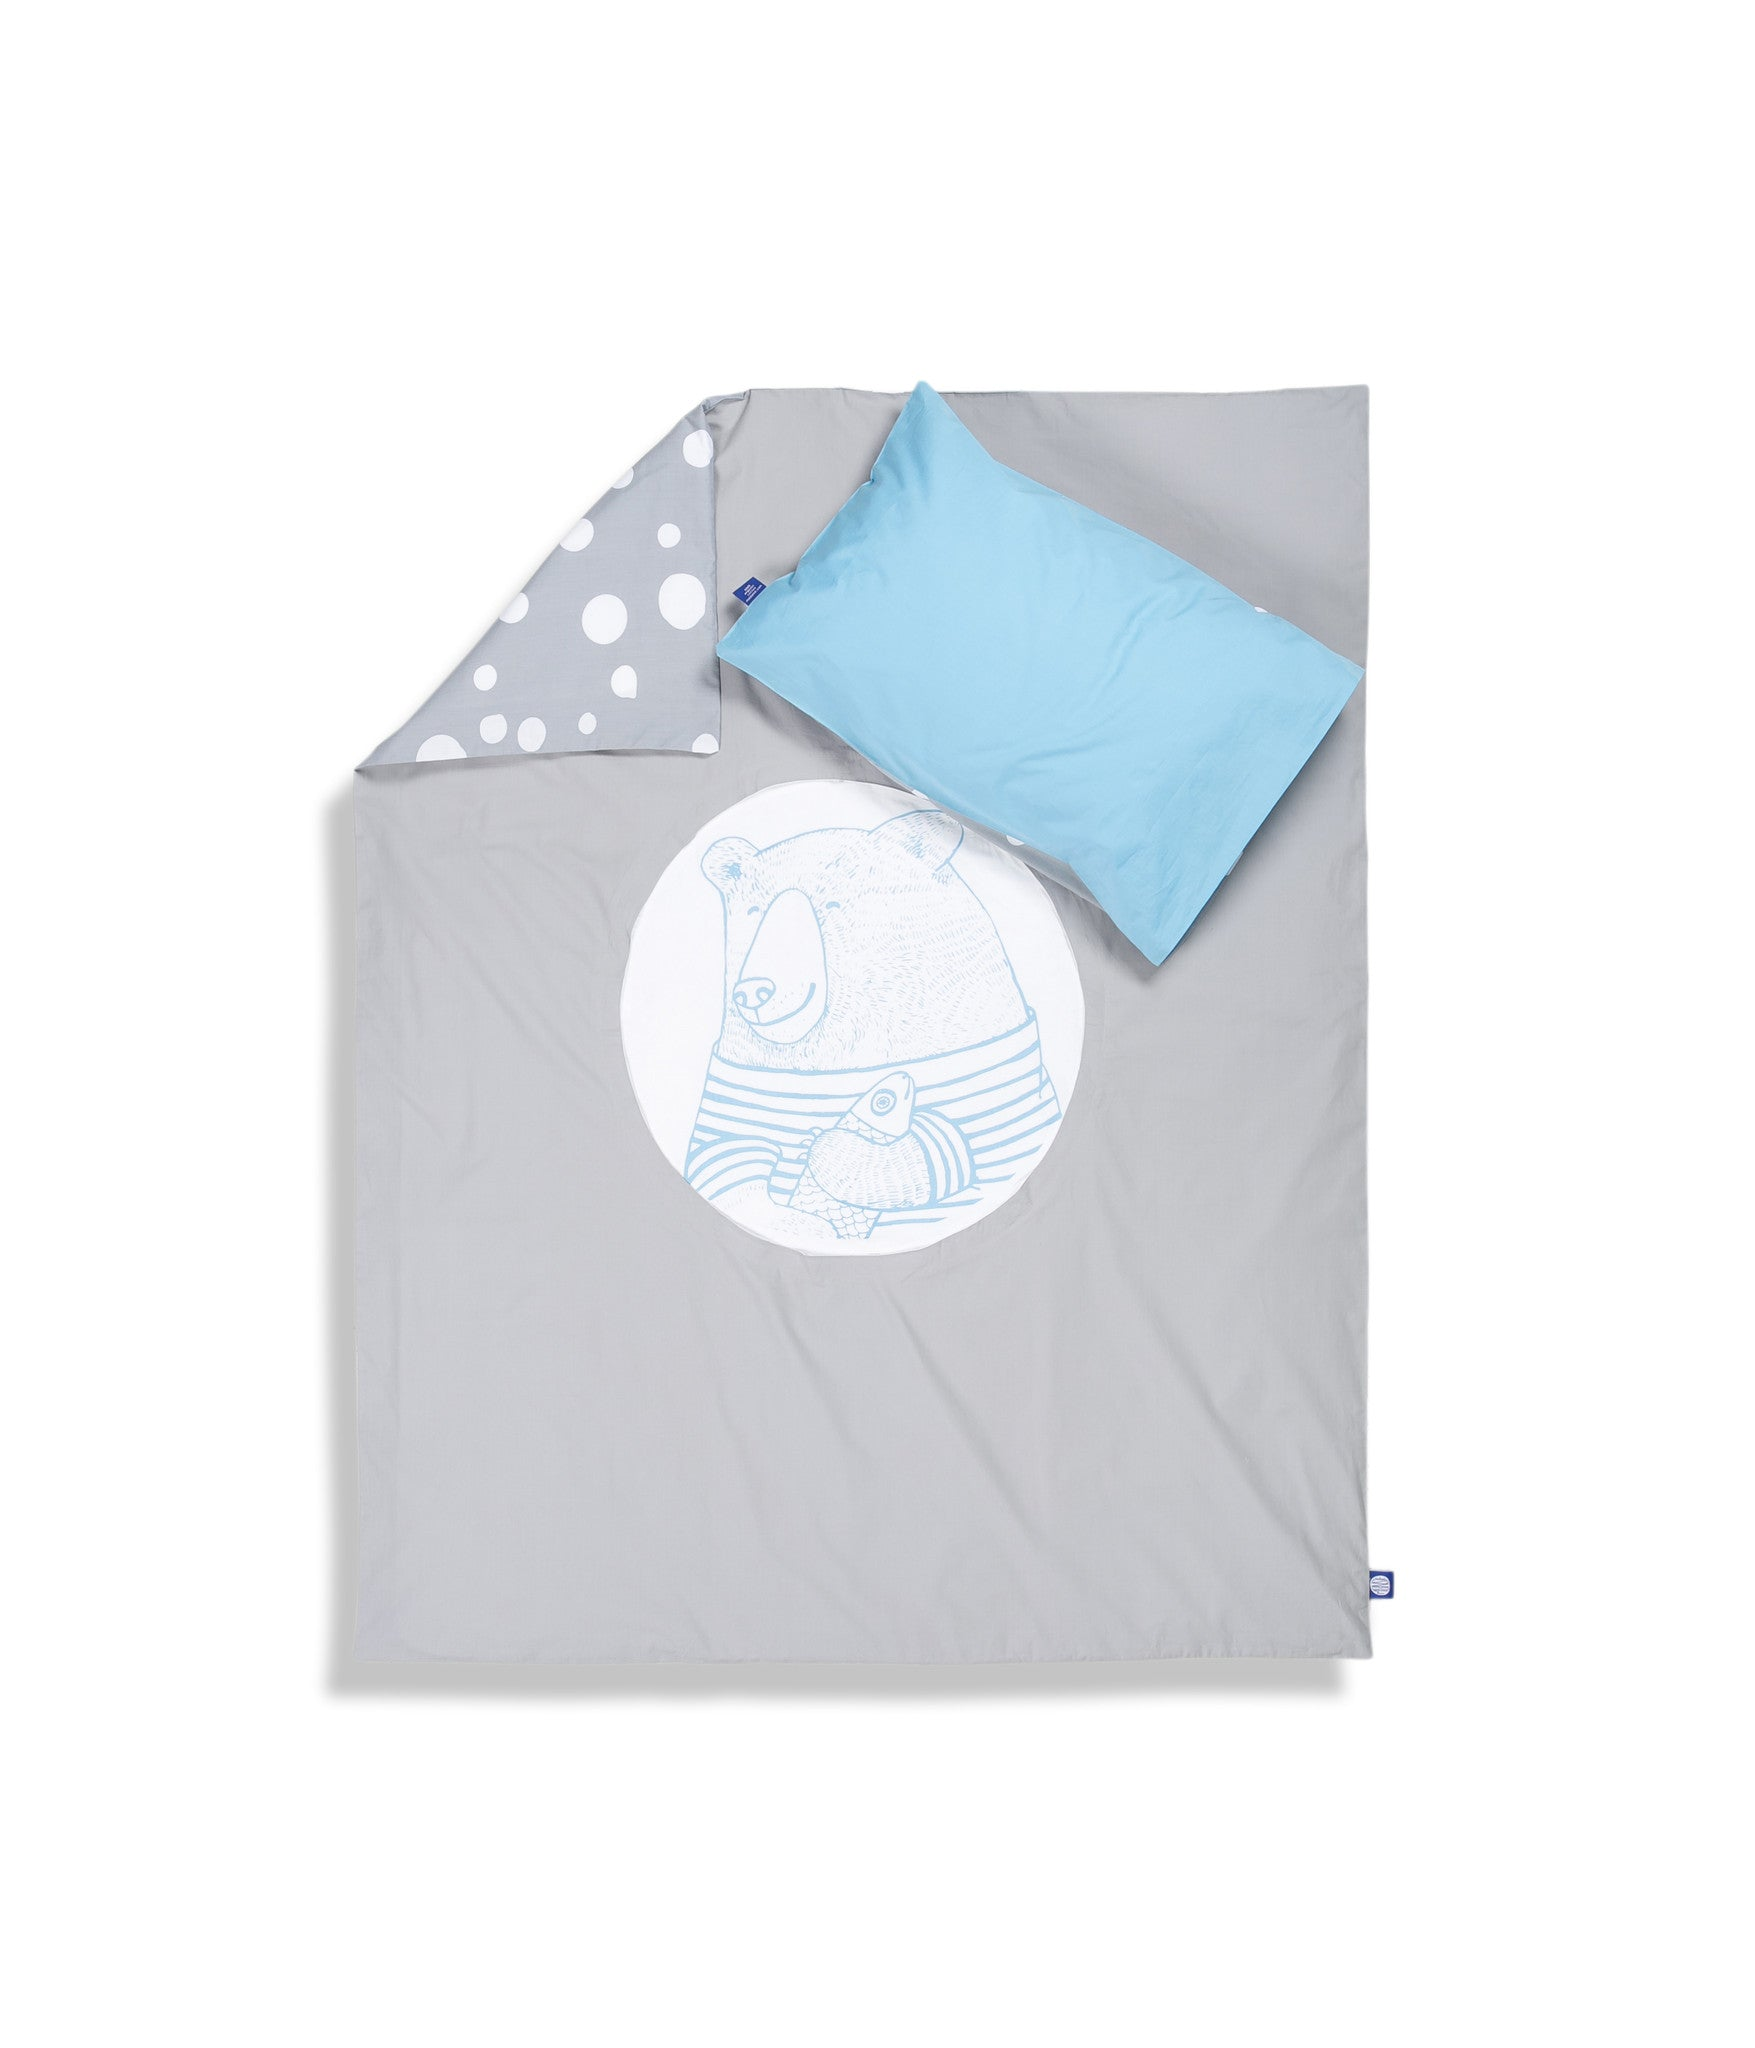 Organic cotton cot bed set. Baby bedding. Blue pillow case and grey duvet cover with bear. Dotted pattern bed linen. Customised bedding.